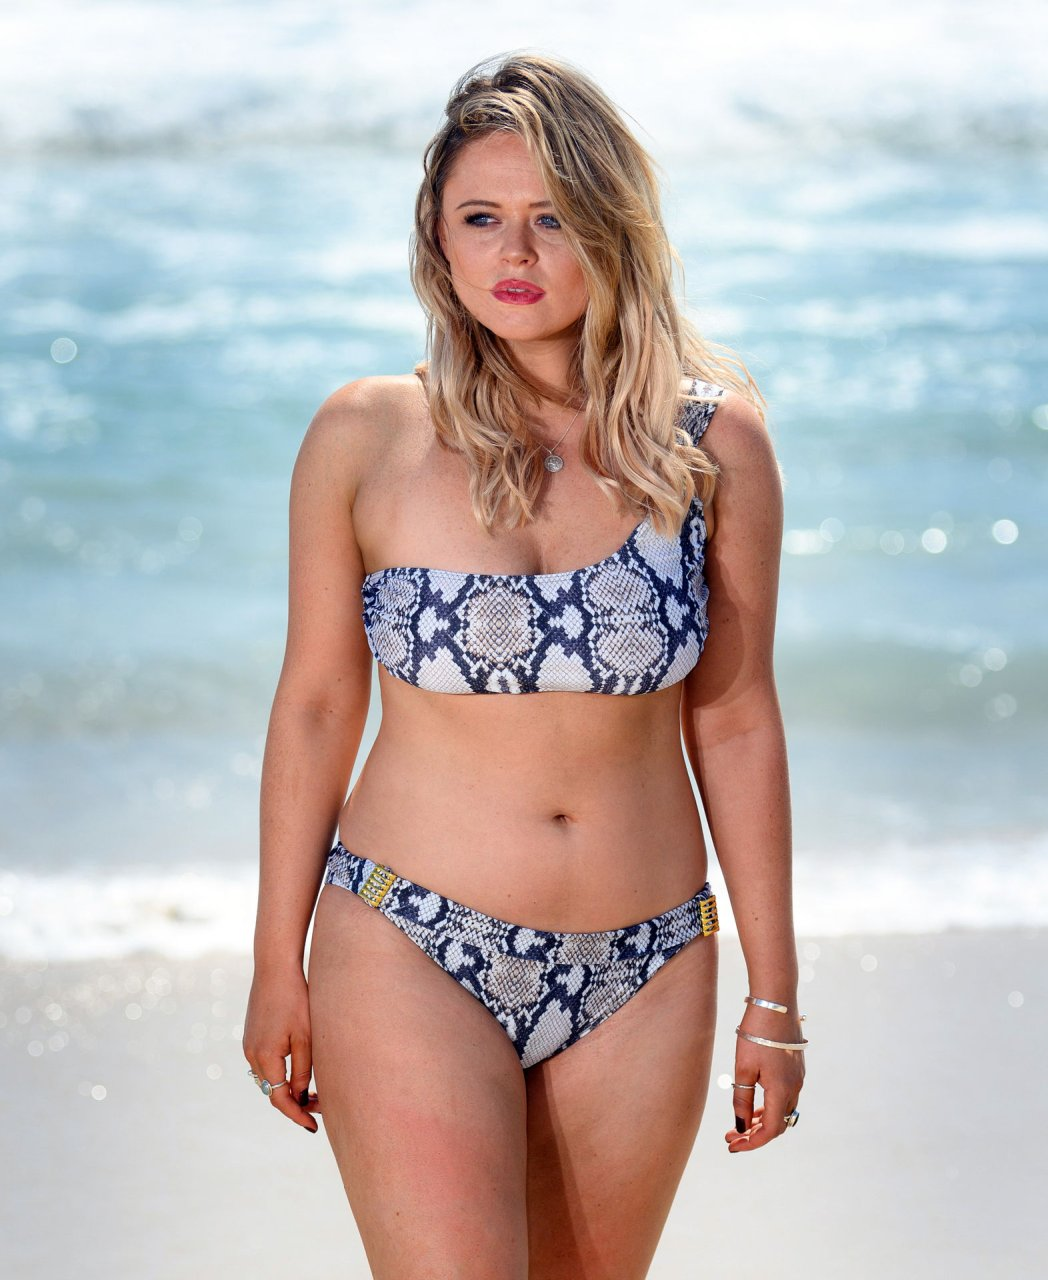 Emily Atack shows off her stunning bikini body on the beach in Queensland, Australia, 11/15/2018.